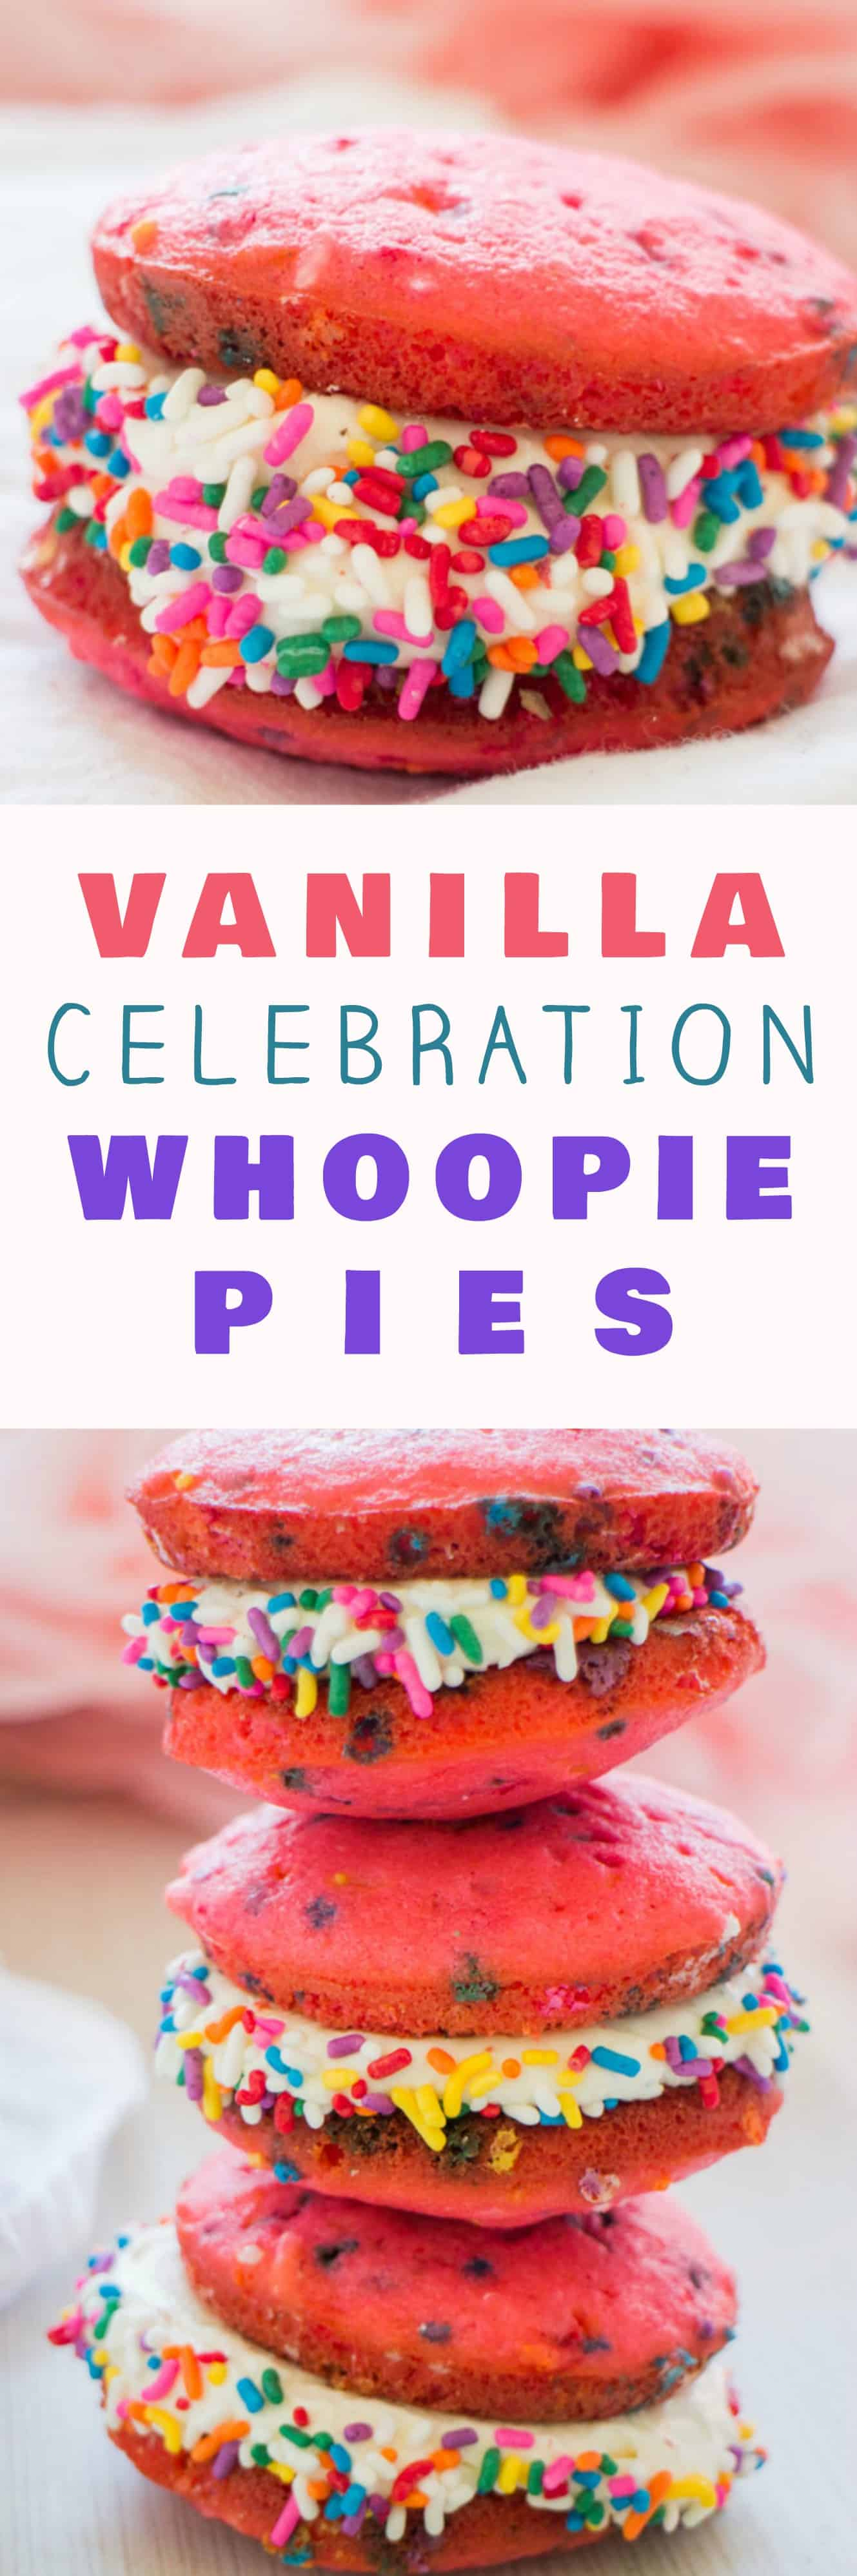 BIRTHDAY PARTY Vanilla Whoopie Pies This Easy Recipe Makes Delicious Cake With